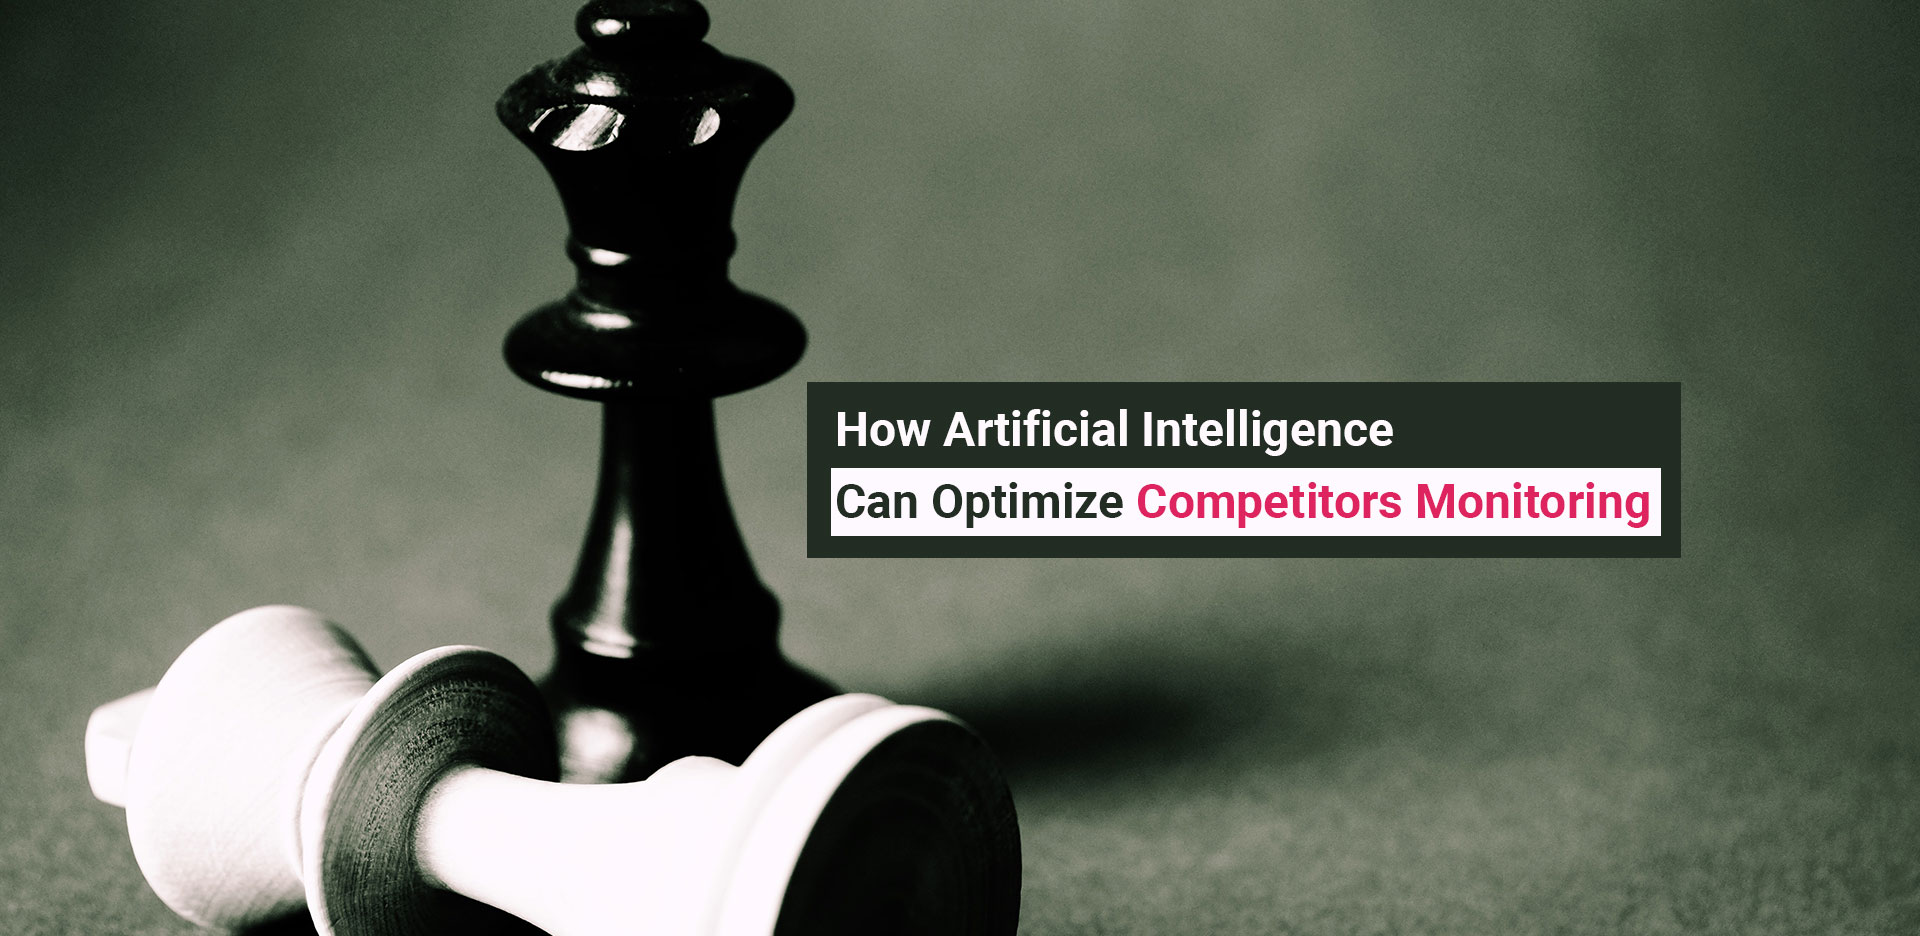 How Artificial Intelligence Can Optimize Competitors Monitoring